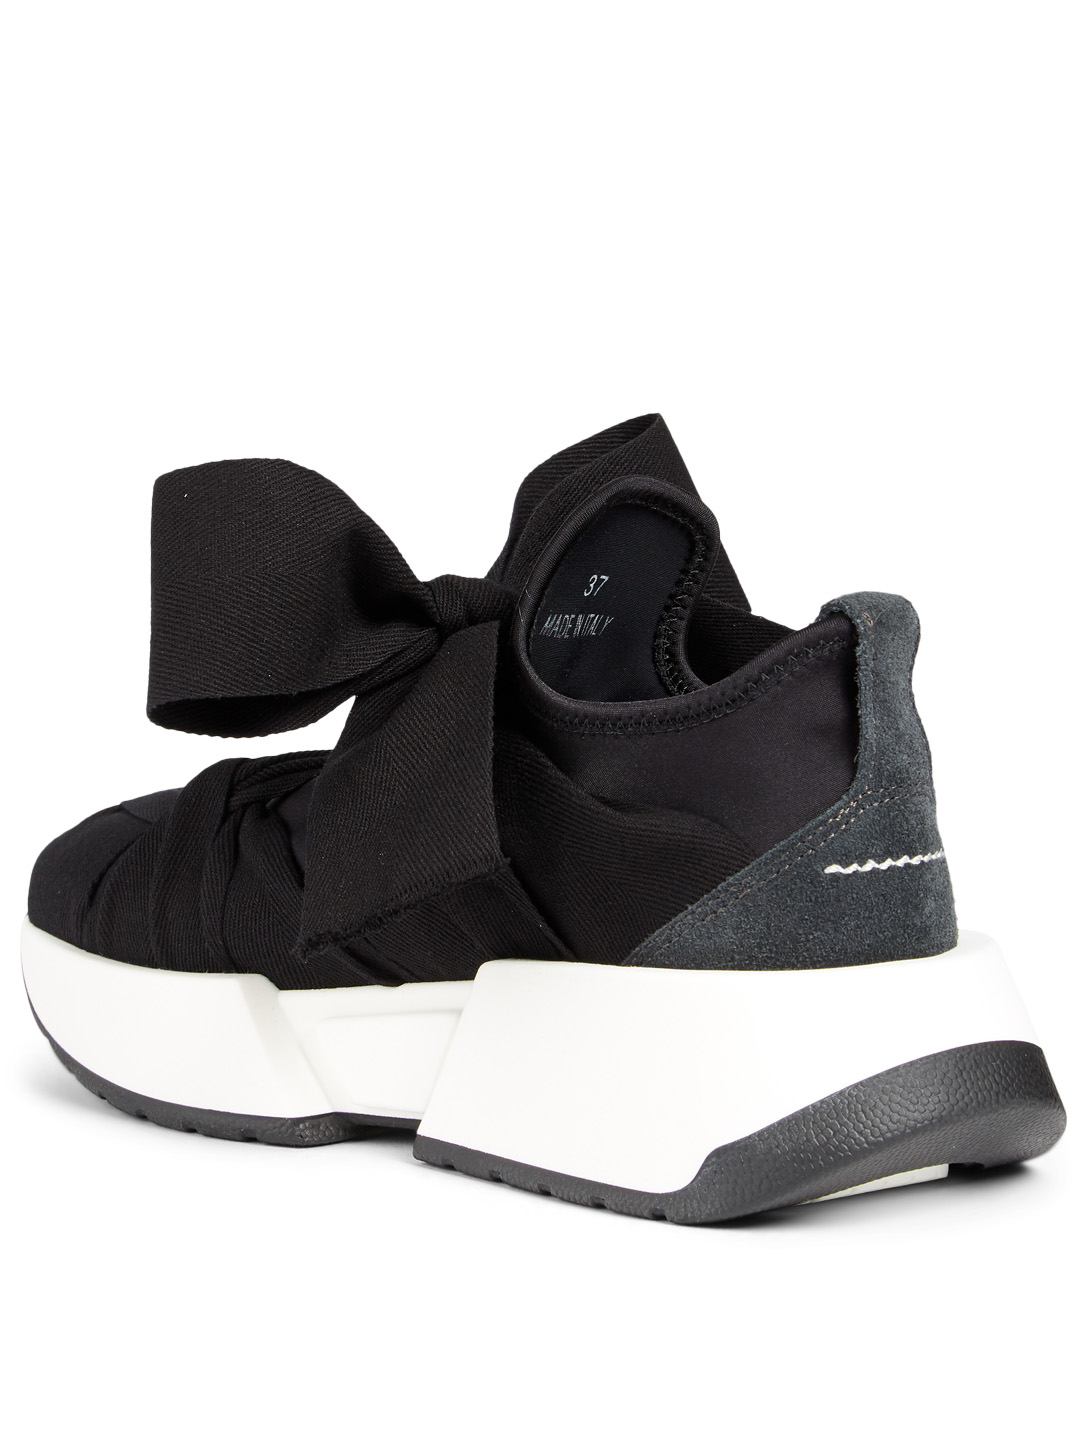 MM6 Bow Ties Neoprene Sneakers Designers Black